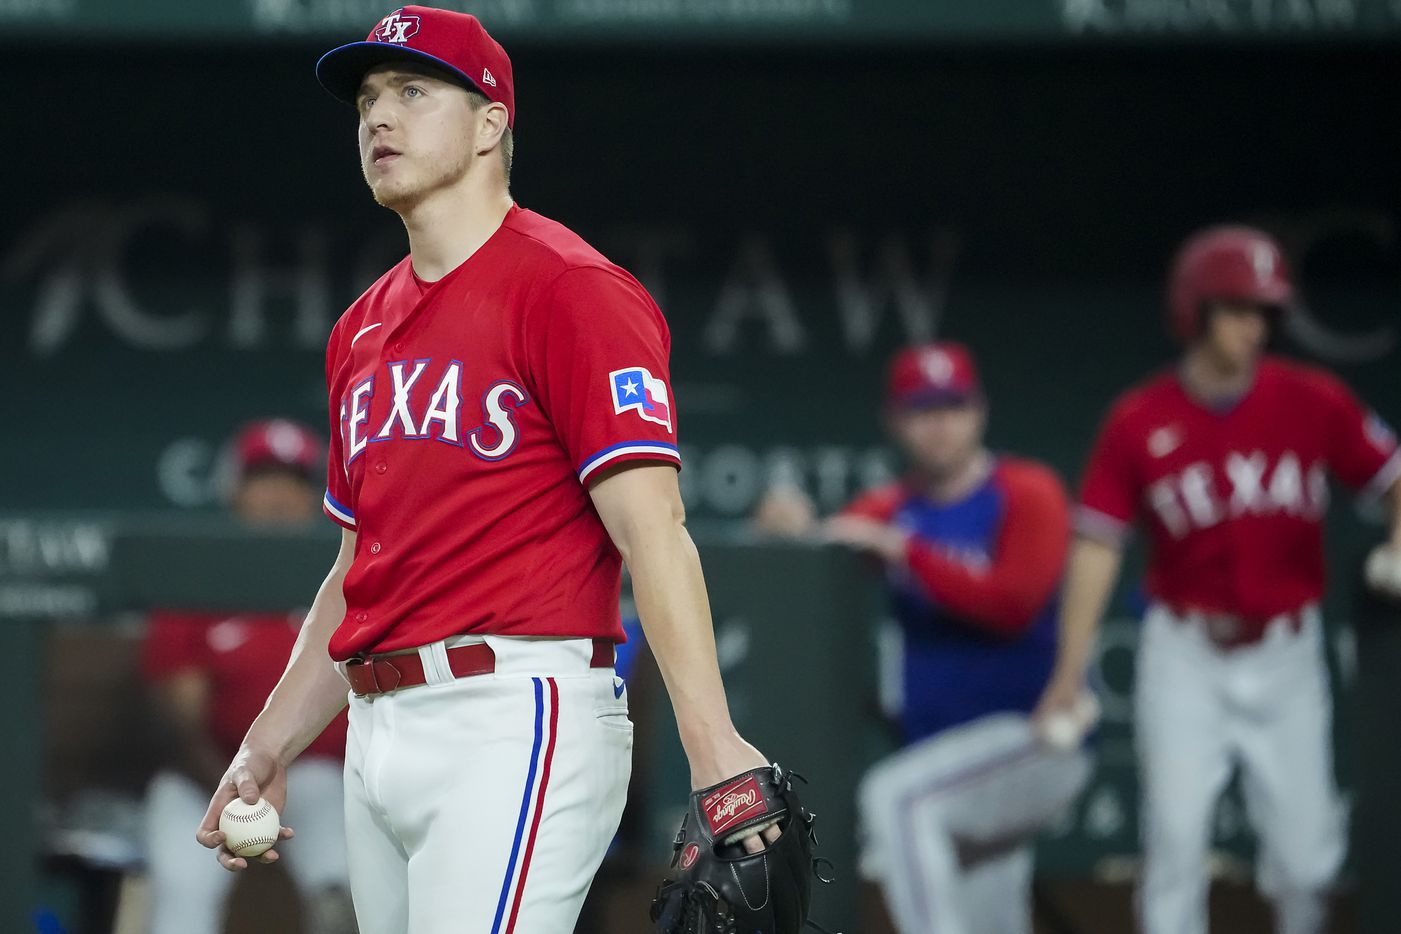 Texas Rangers relief pitcher Josh Sborz reacts after giving up a bases loaded walk during the tenth inning against the Minnesota Twins at Globe Life Field on Friday, June 18, 2021.